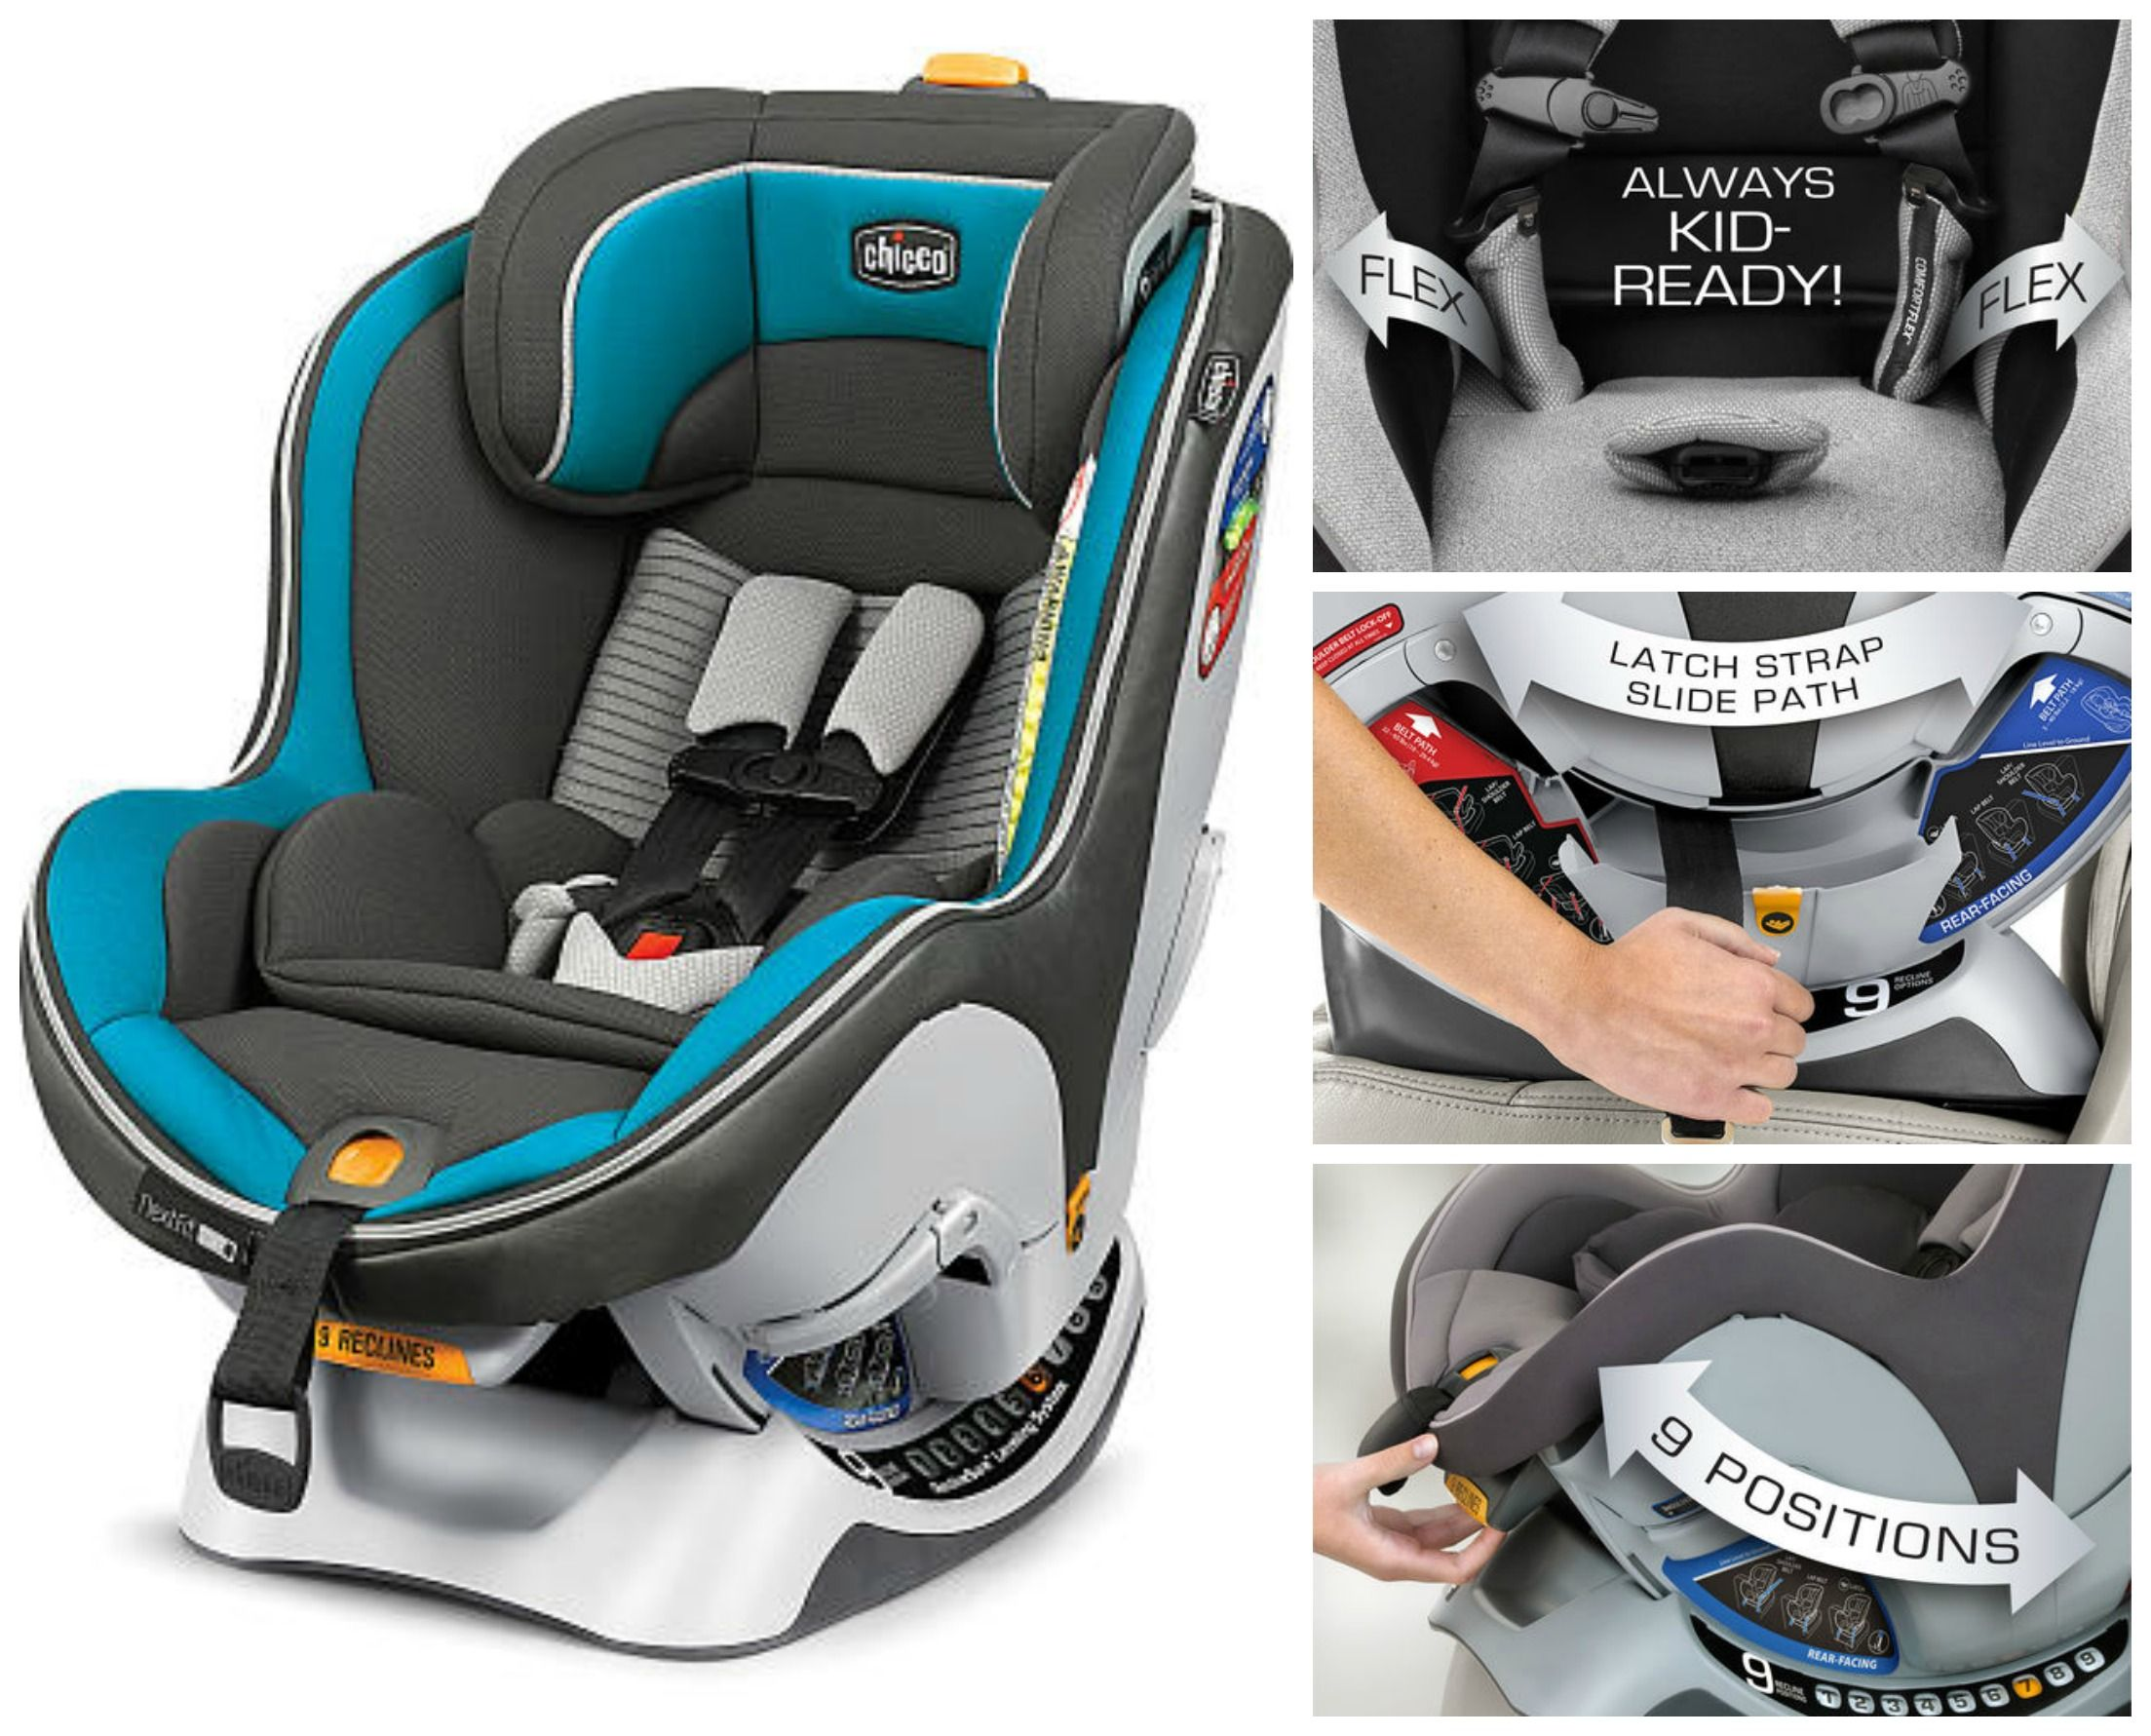 From Our Top 8 Best Convertible Car Seats This Is The Chicco NextFit Why